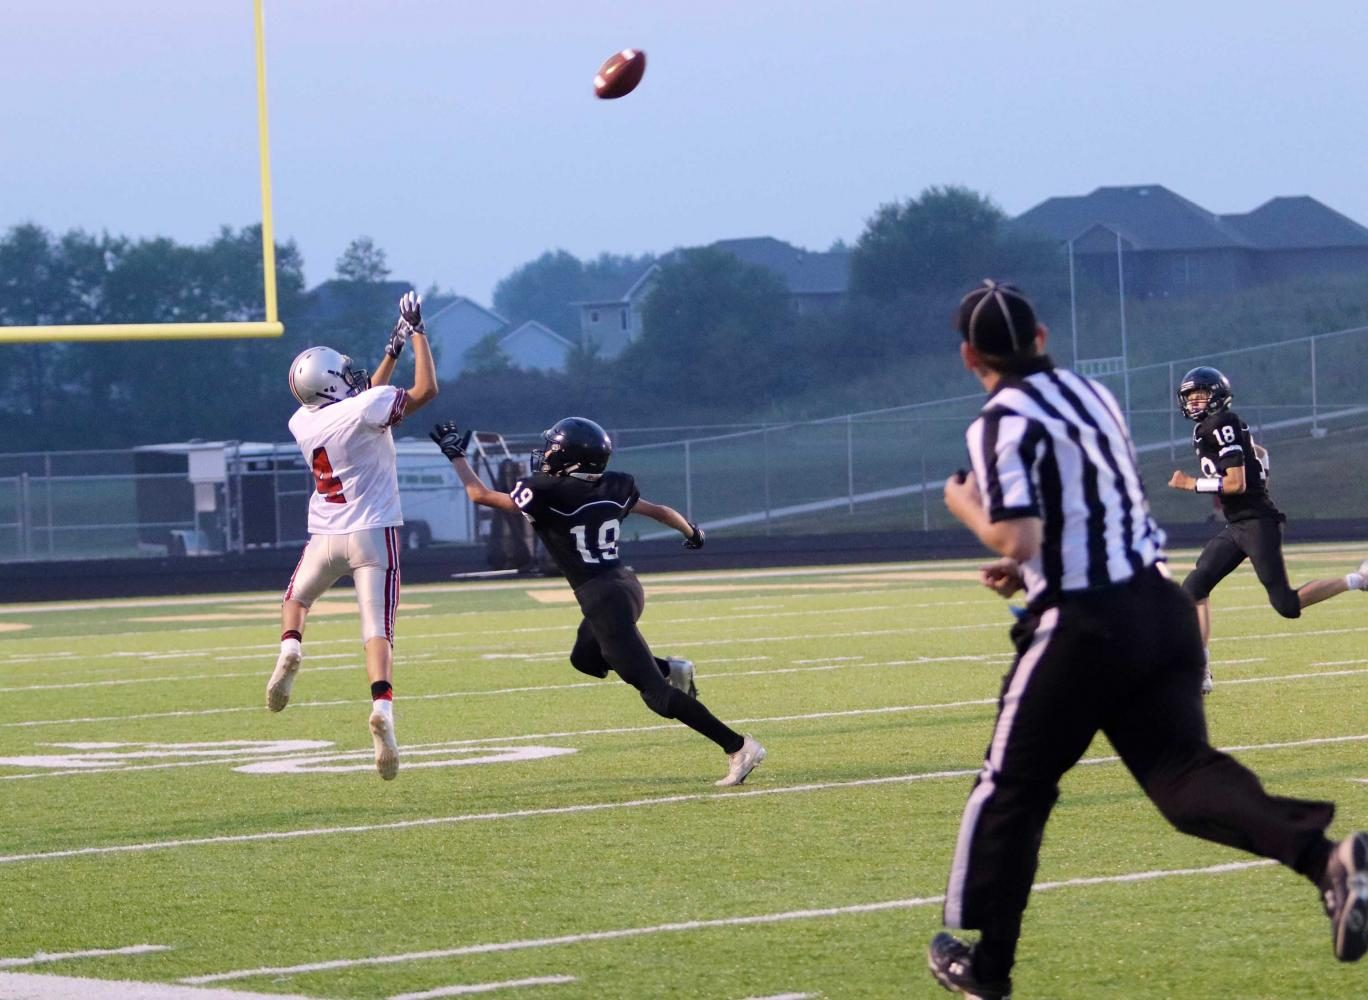 Jacob Means goes up for the catch